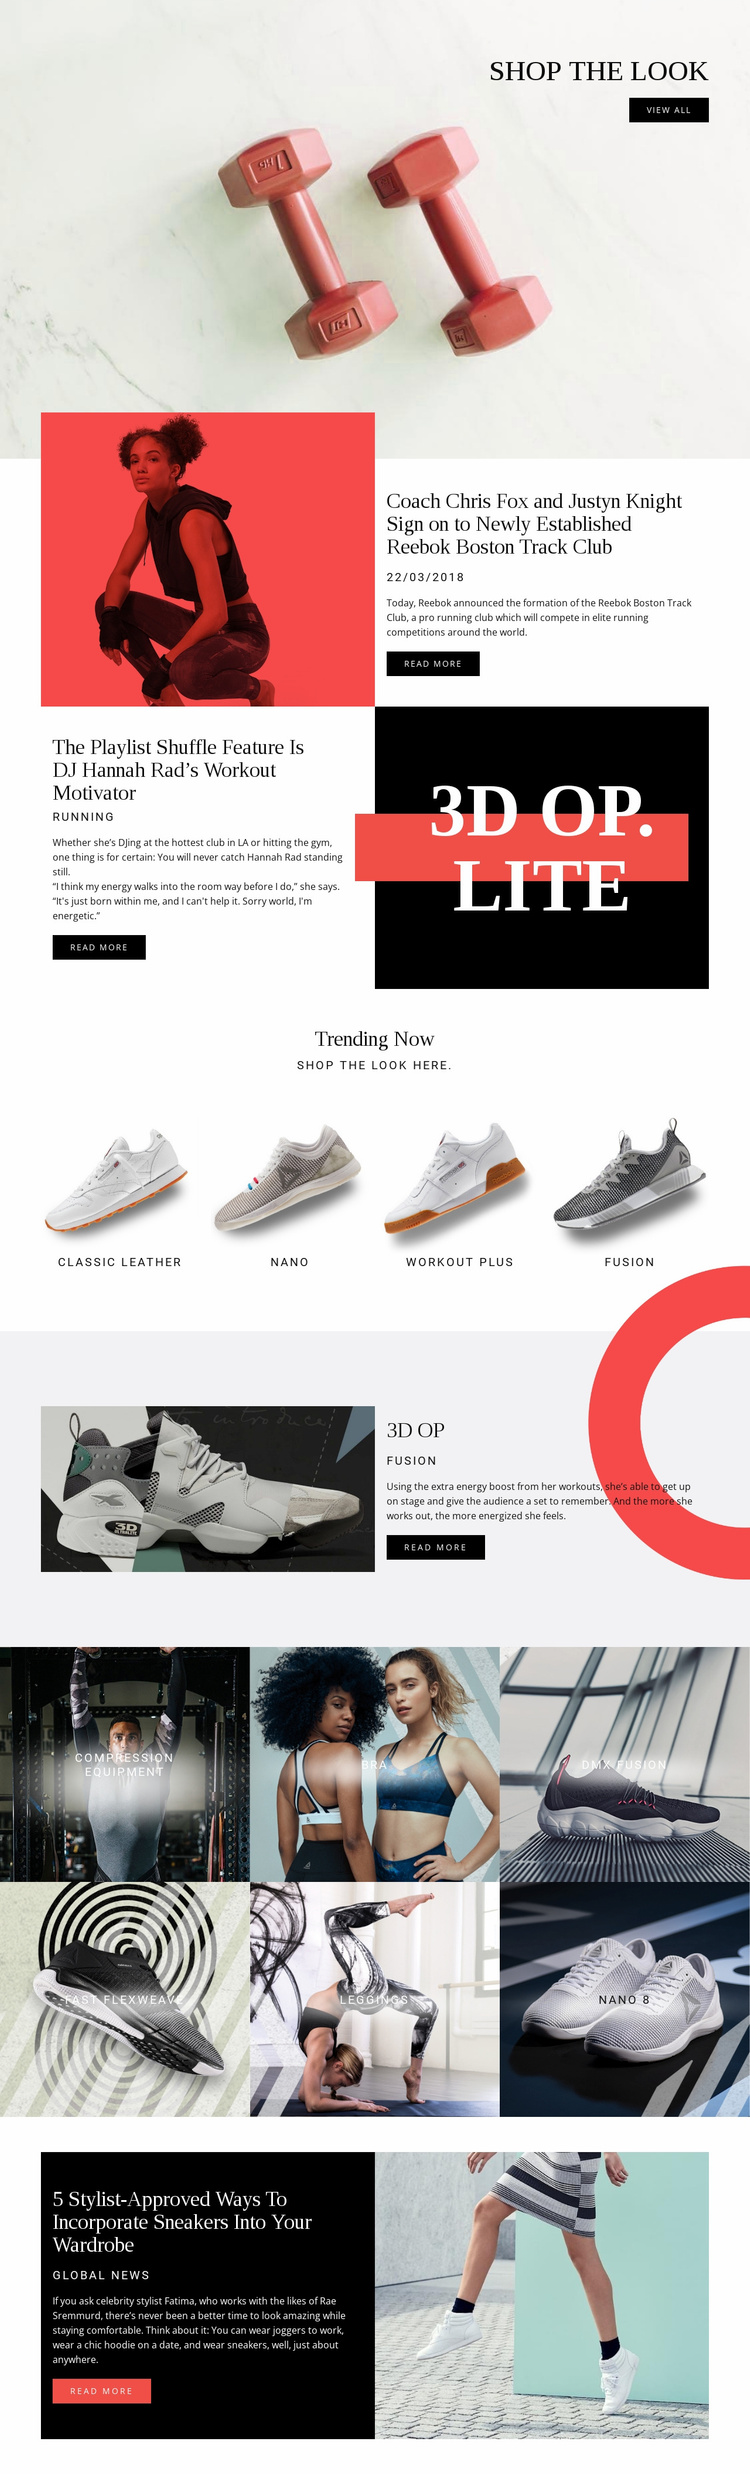 Reebok Website Template